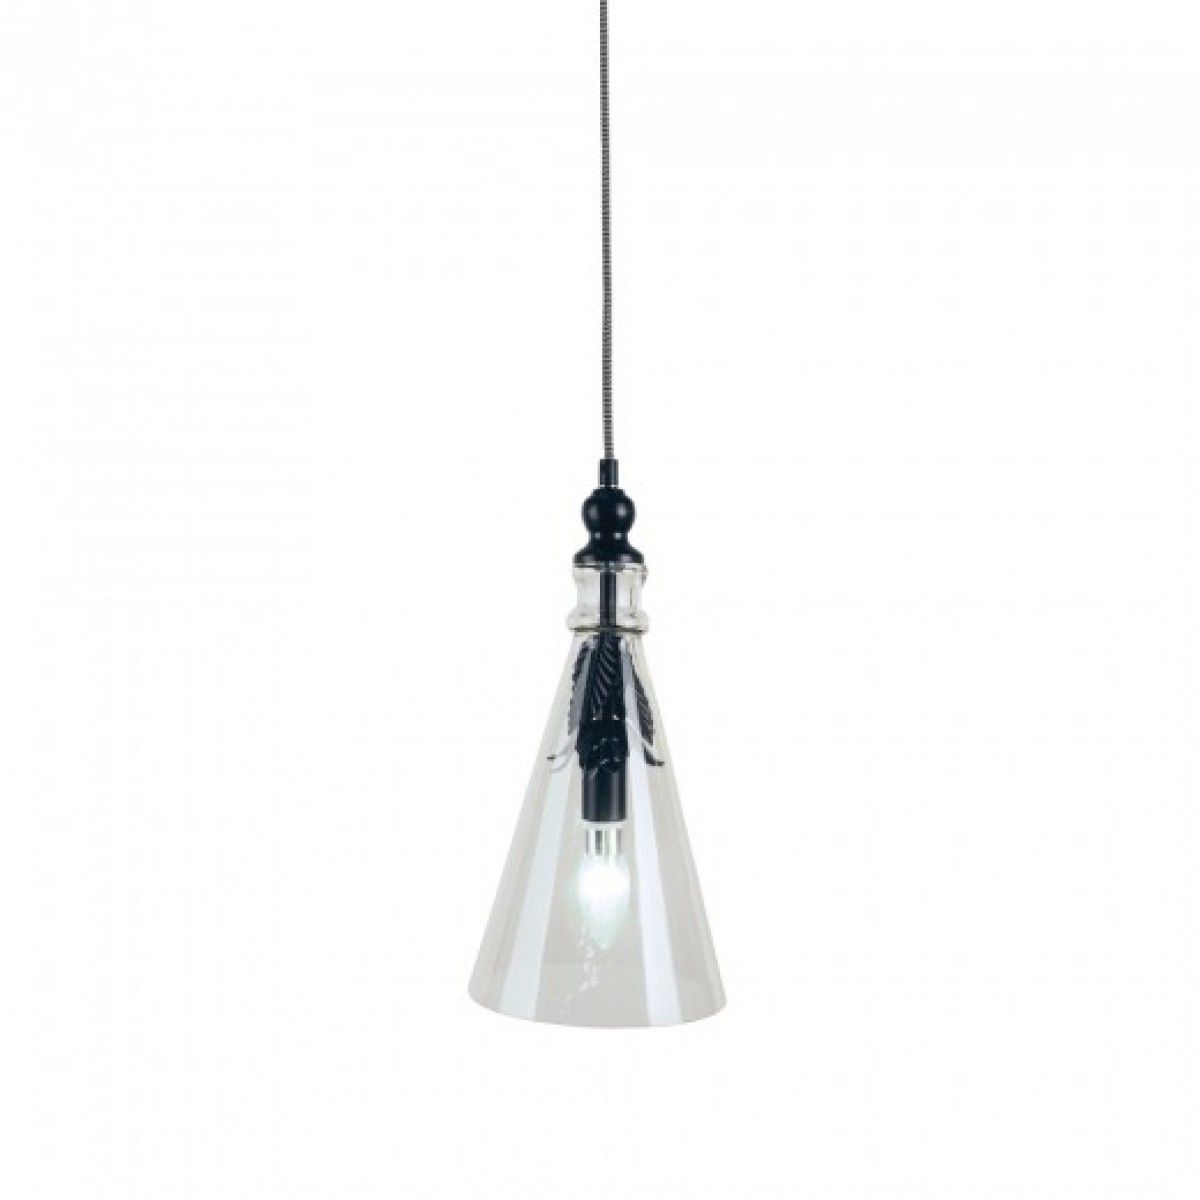 Granada flared flower glass pendant lighting pinterest granada